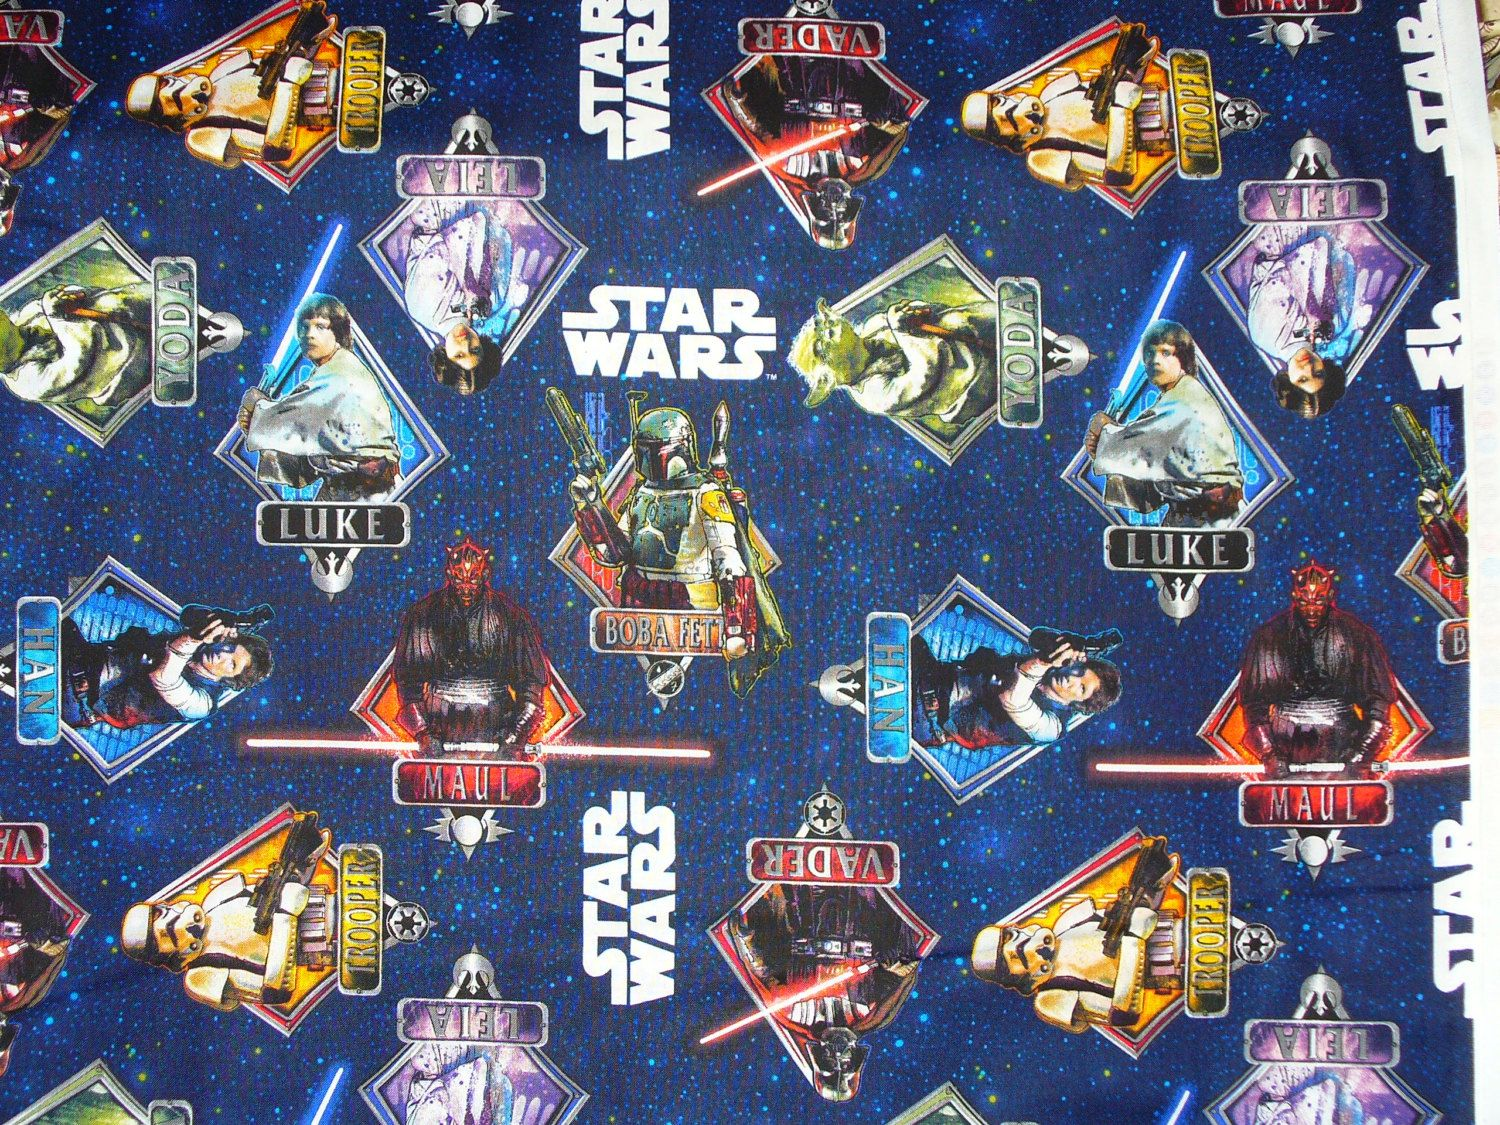 Star Wars Clone Wars Fabric Google Search Star Wars